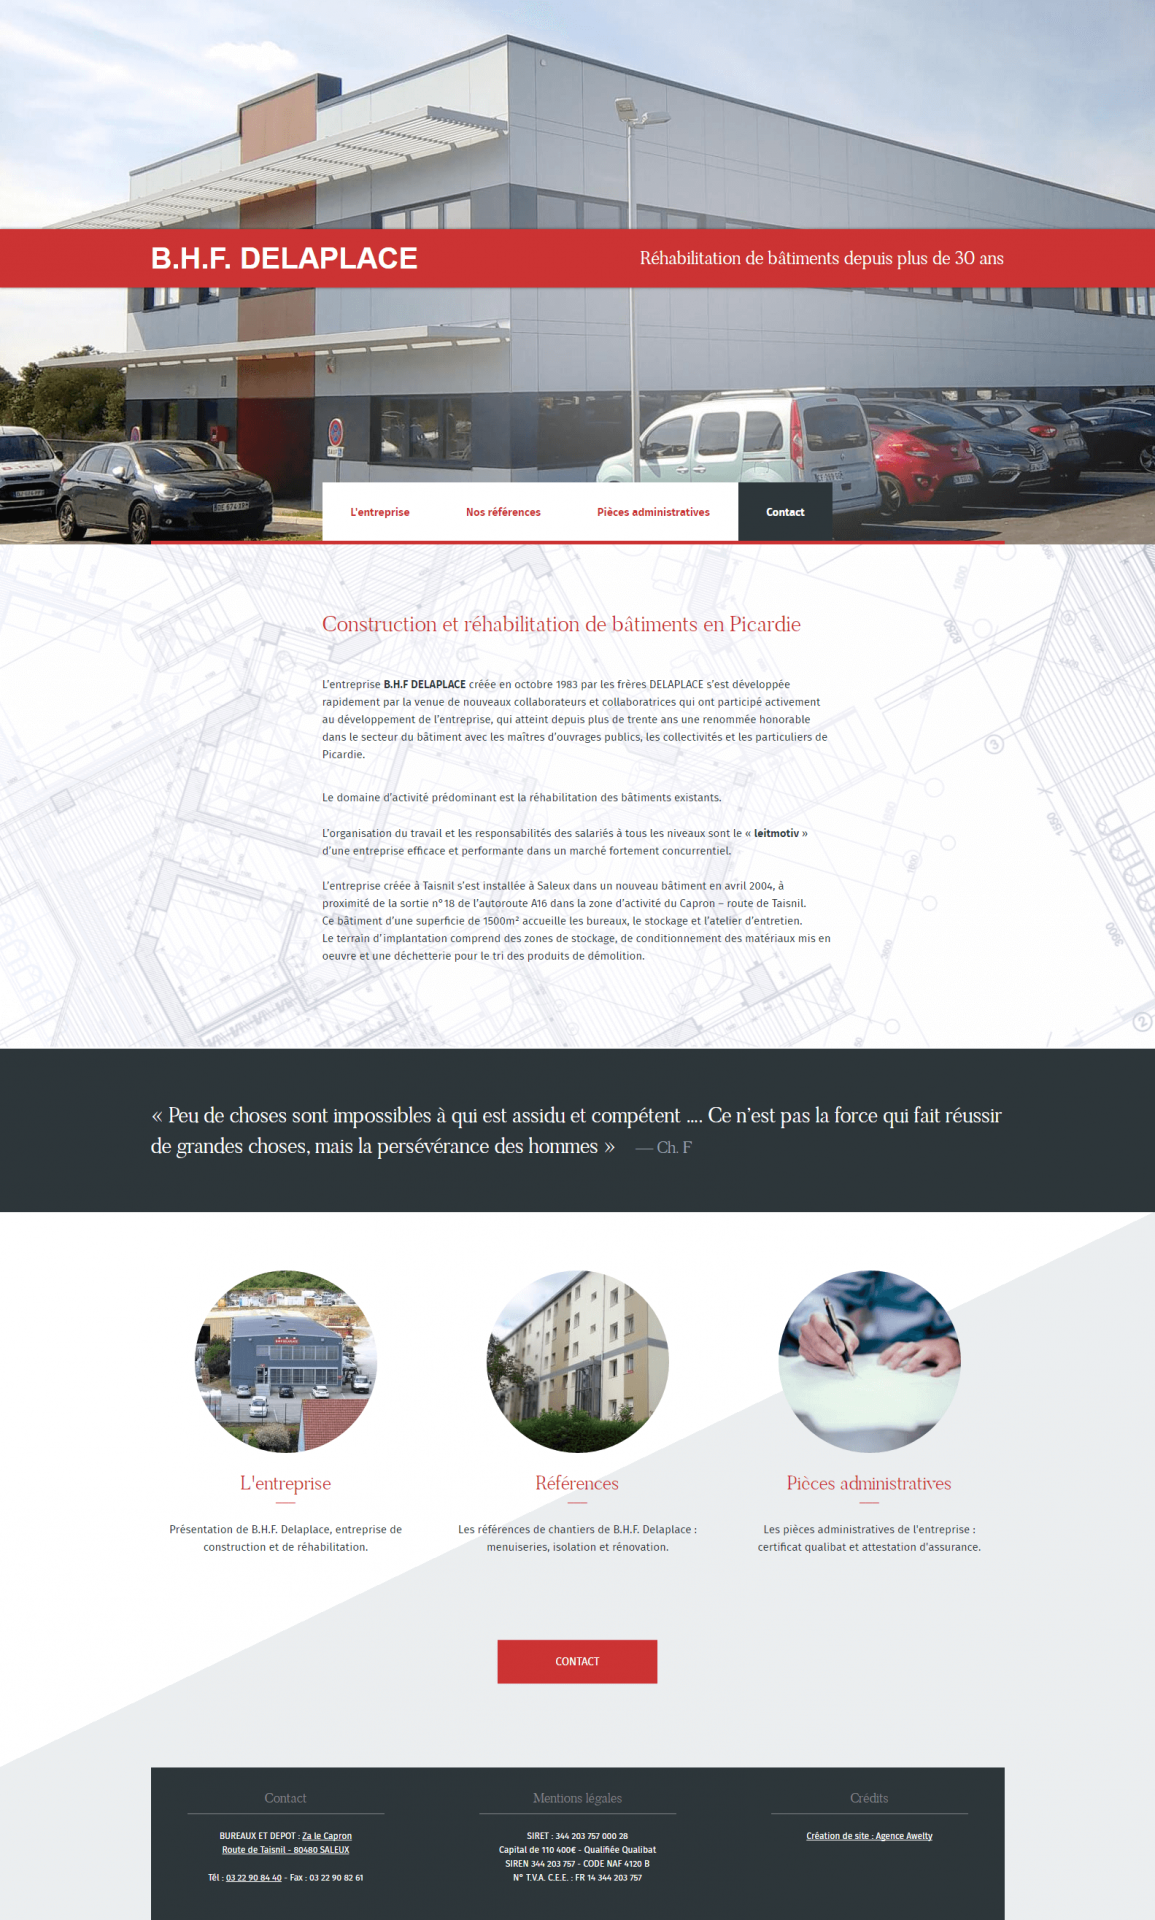 Cr ation du site de l 39 entreprise b h f delaplace - Rehabilitation de batiment ...